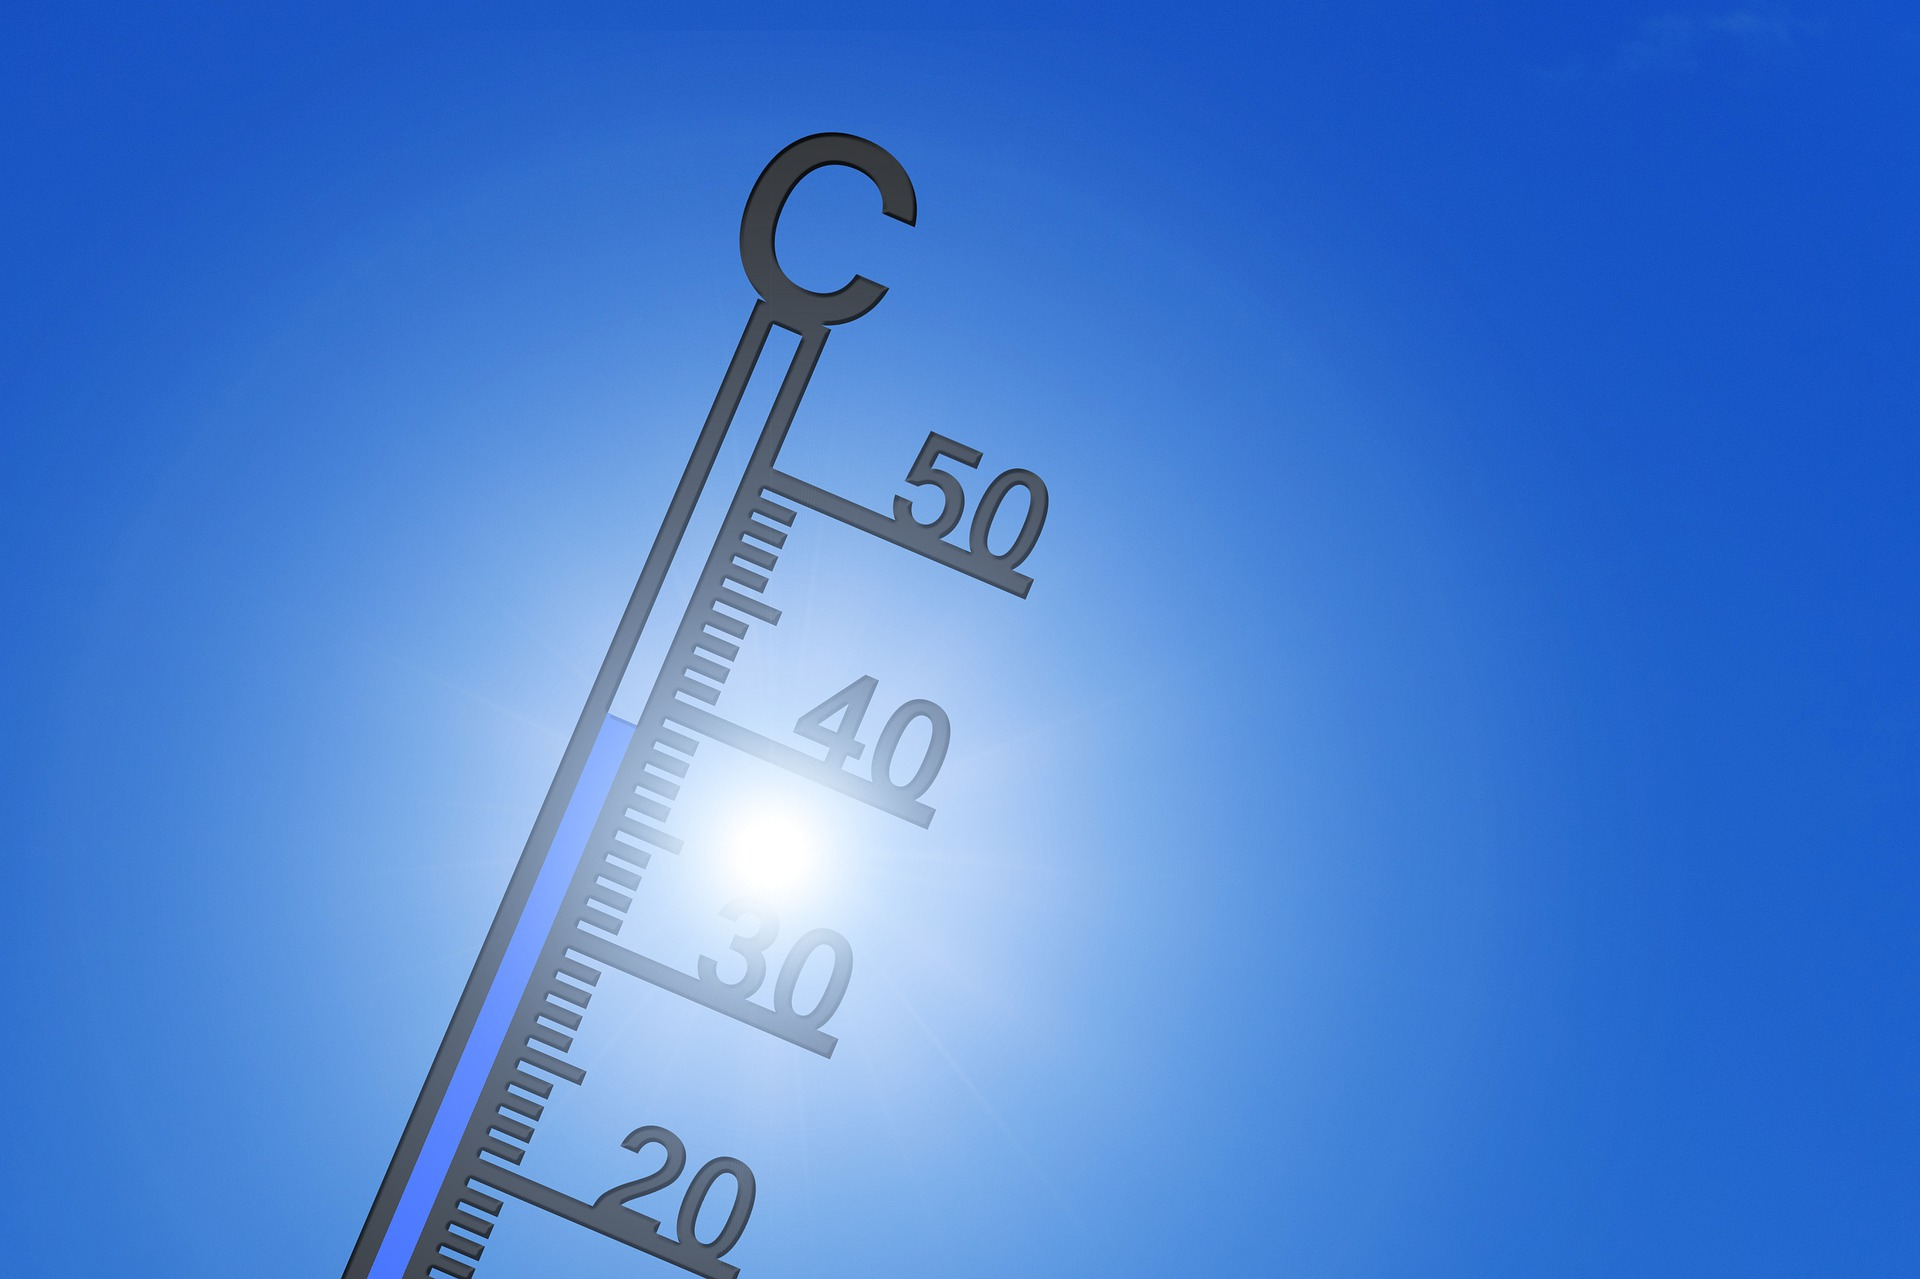 thermometer-4353318_1920